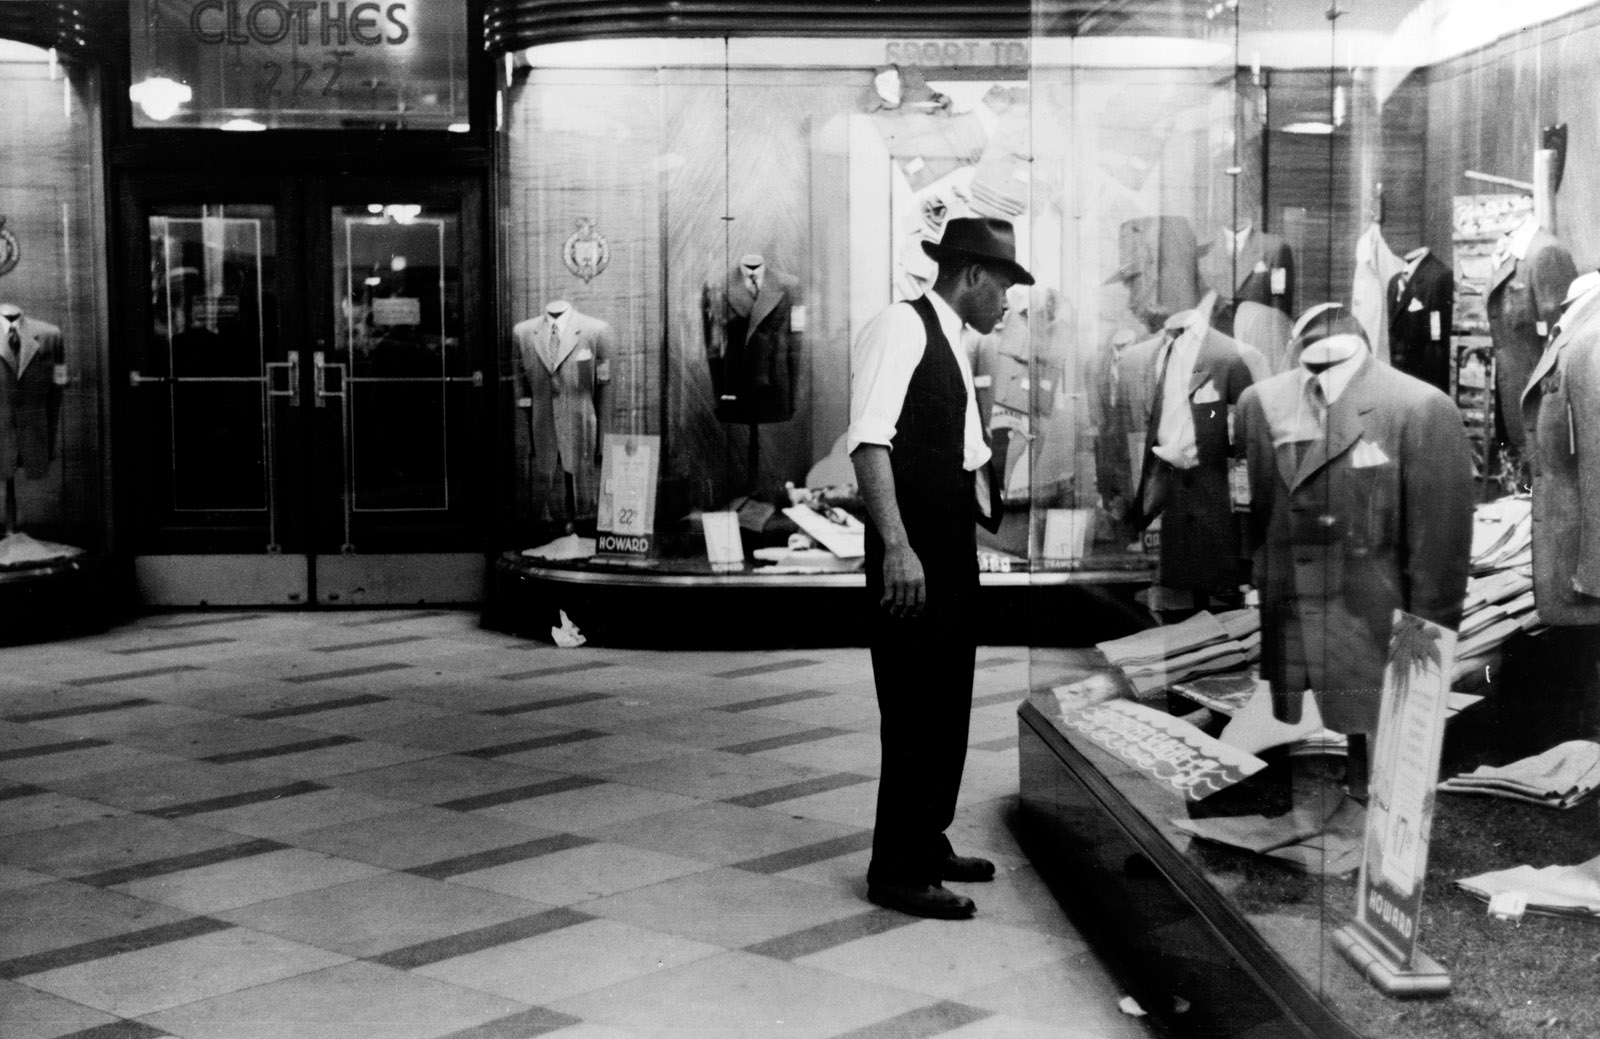 Window shopping, Chicago, Illinois, July 1941